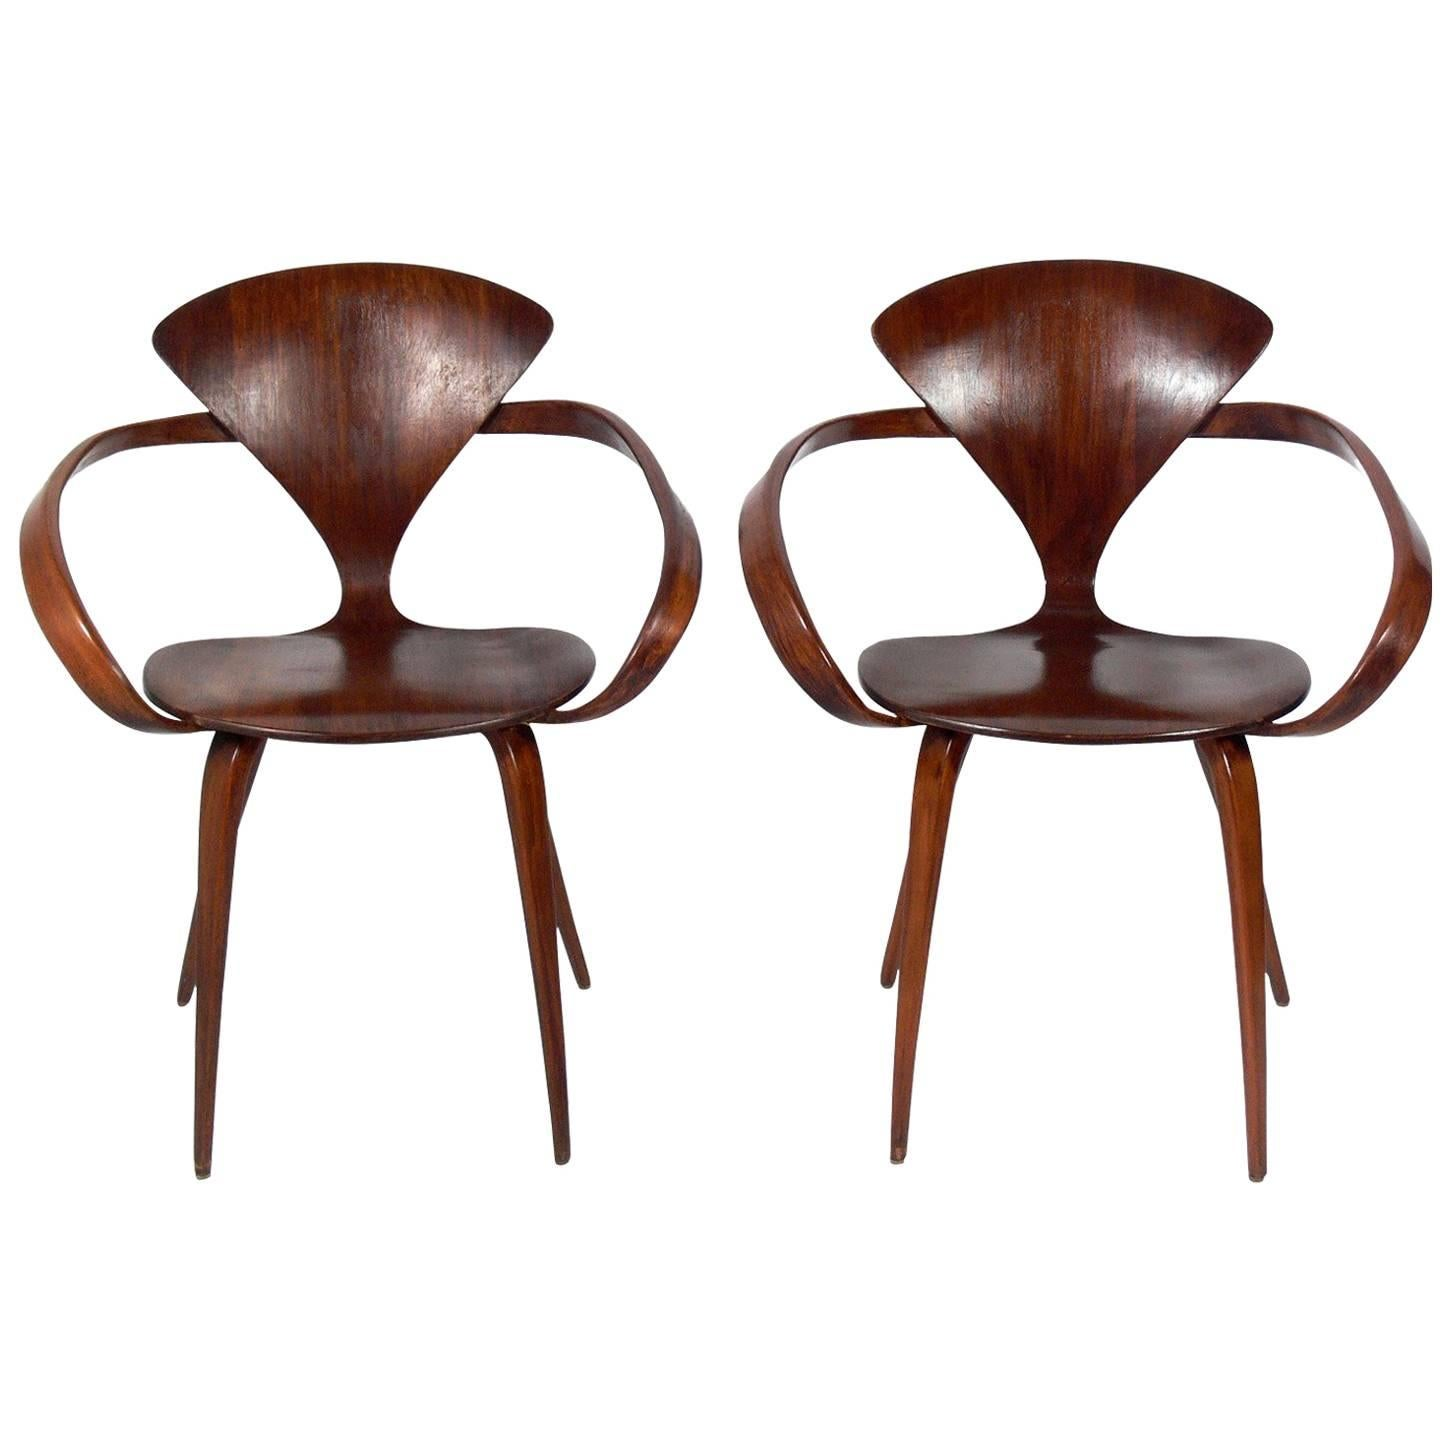 sculptural pair of armchairs by norman cherner for plycraft 1